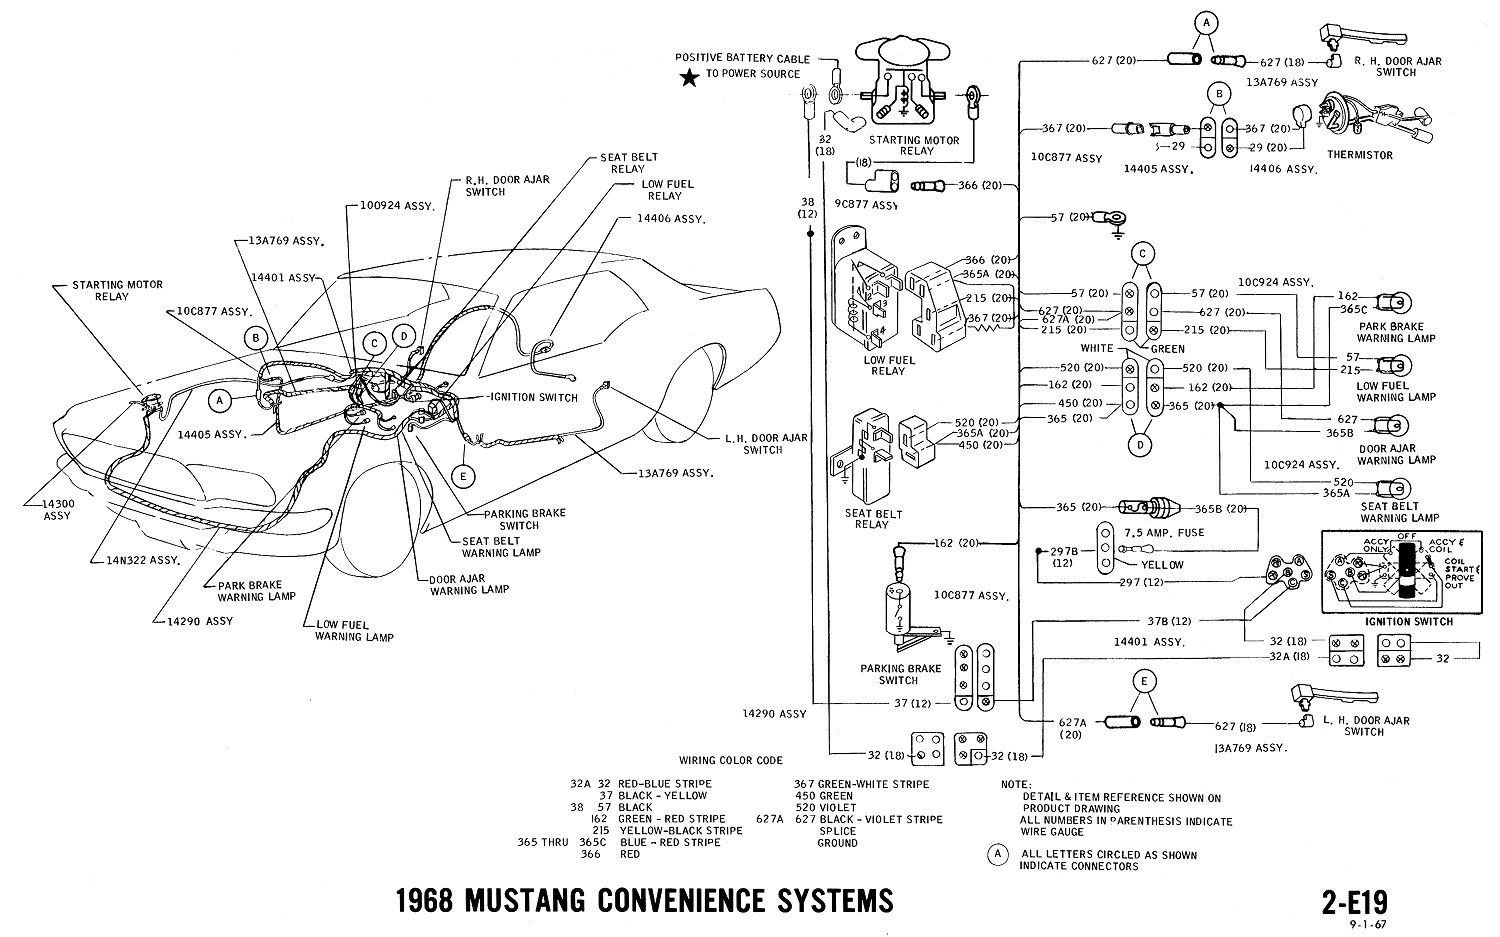 1985 ford ignition wire diagram 1968 ford car ignition wire diagram 1968 mustang wiring diagrams and vacuum schematics ... #15